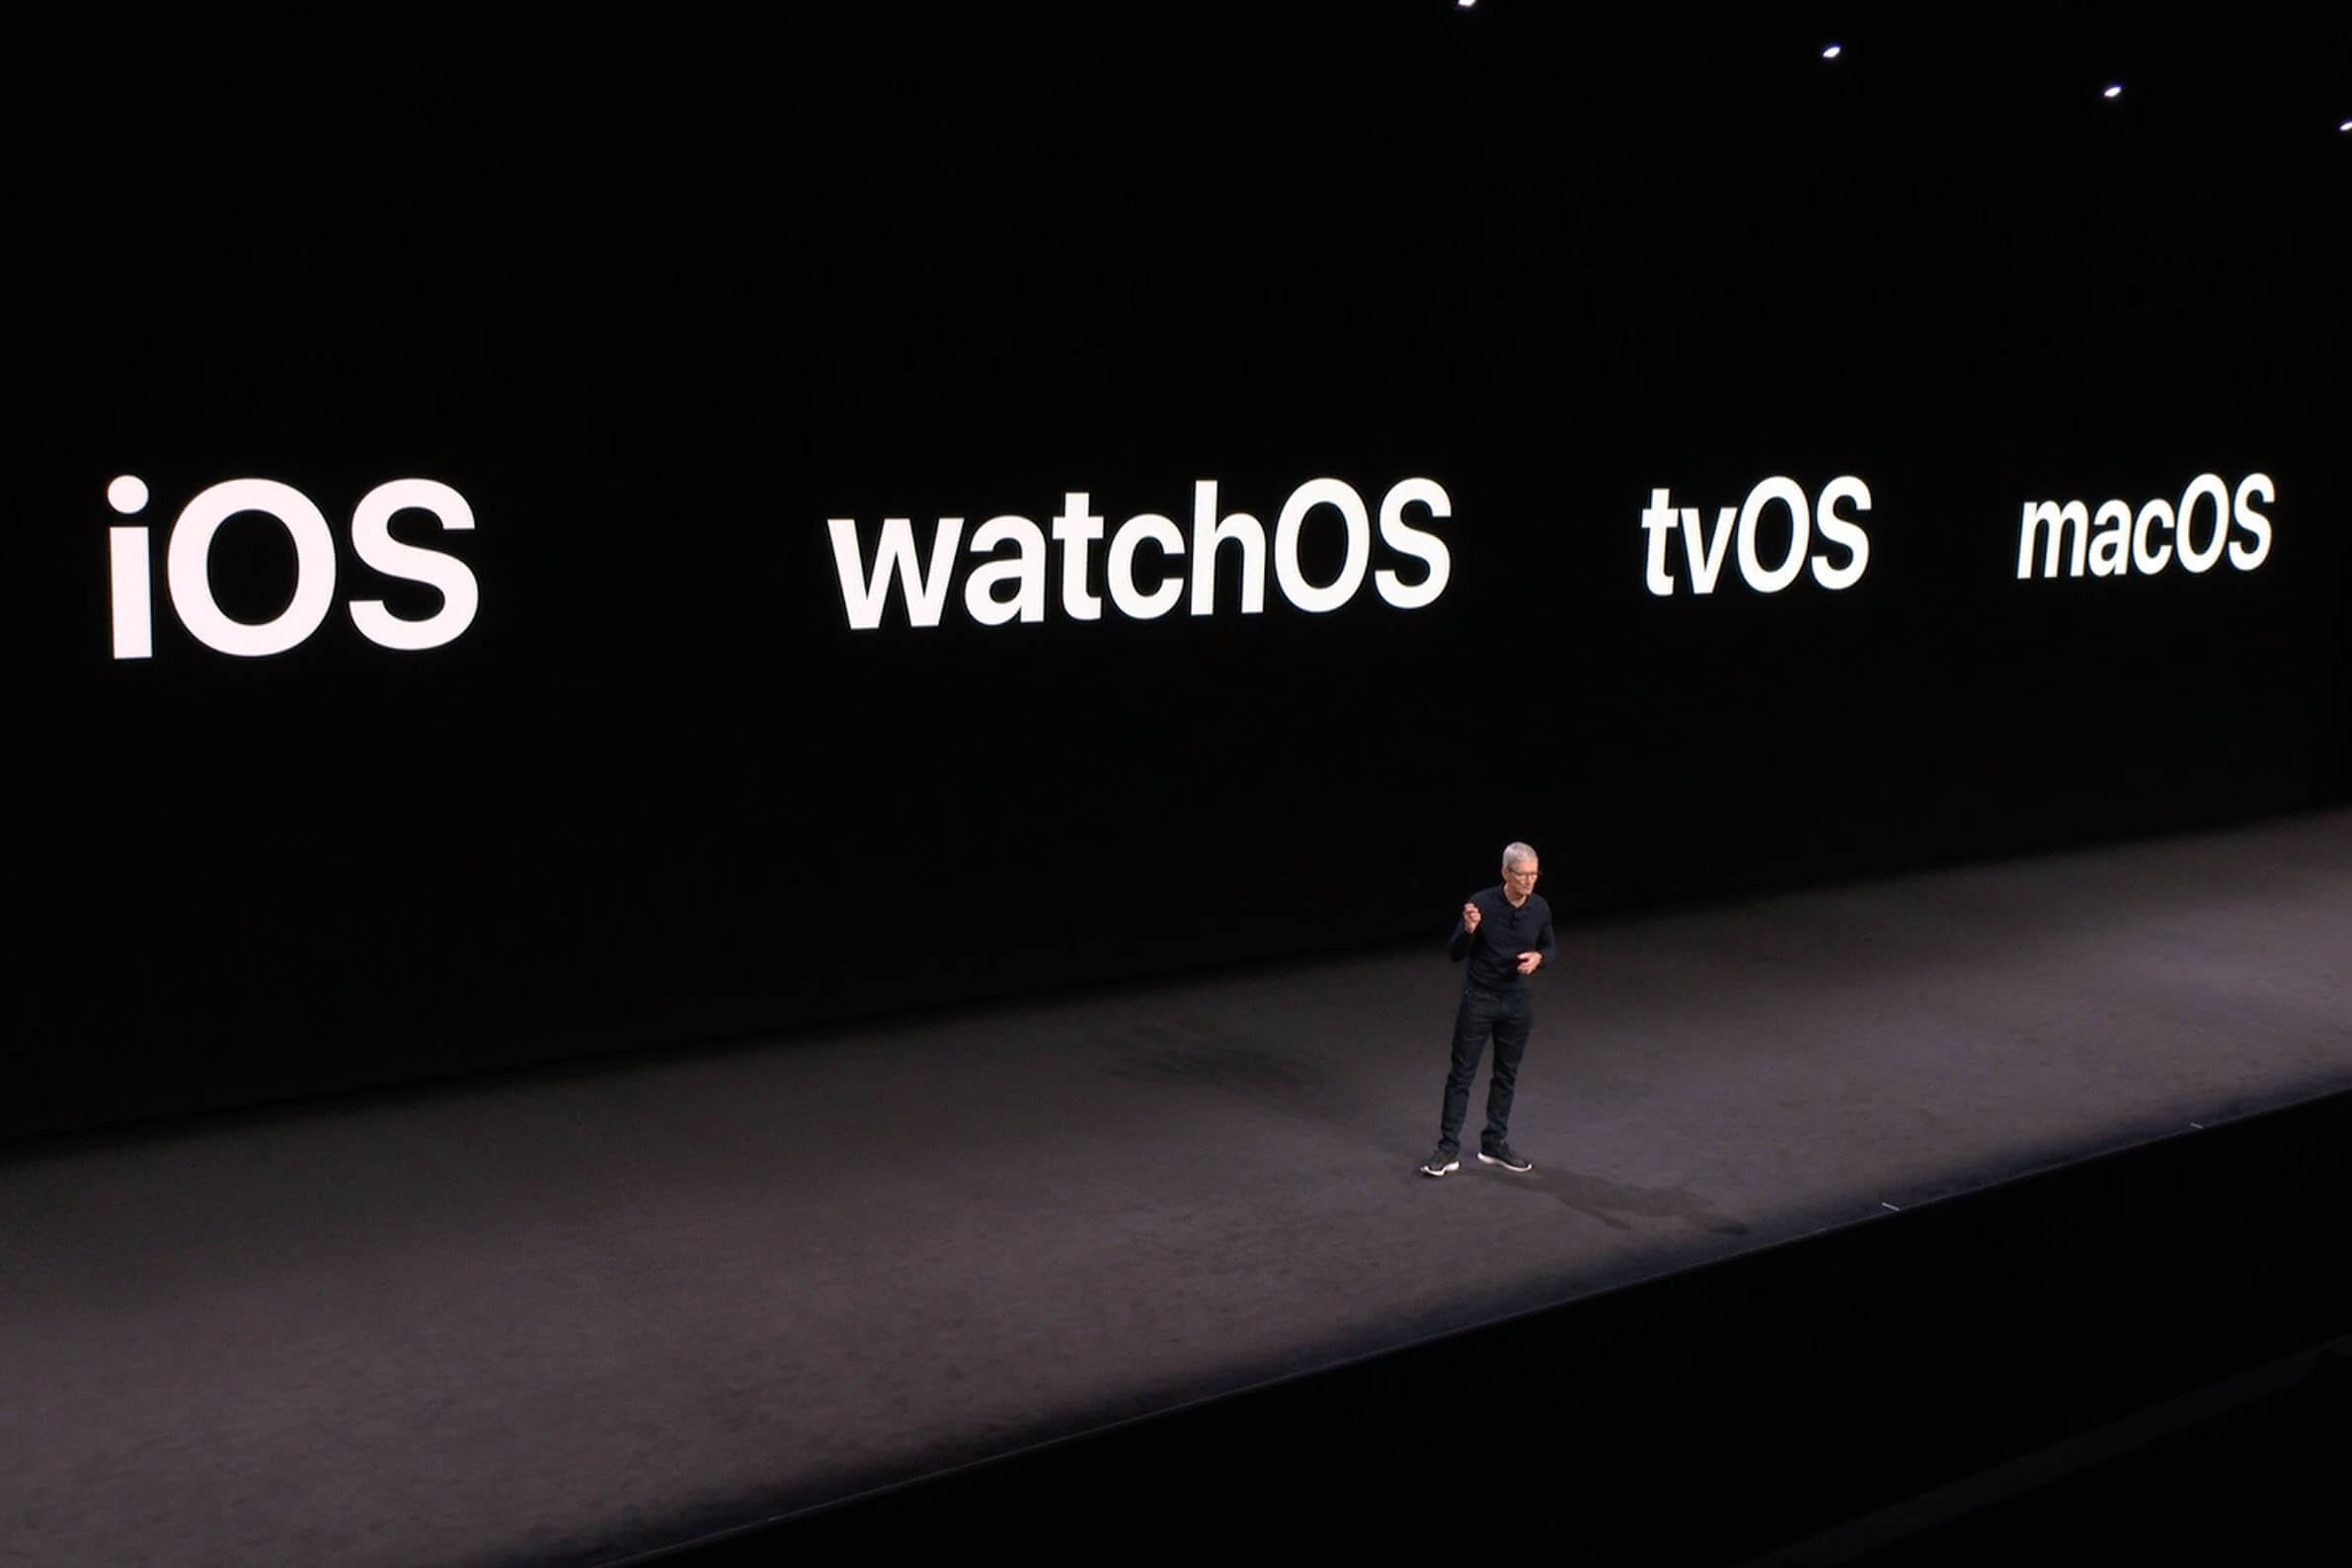 Apple announces watchOS 6 now with its own App Store